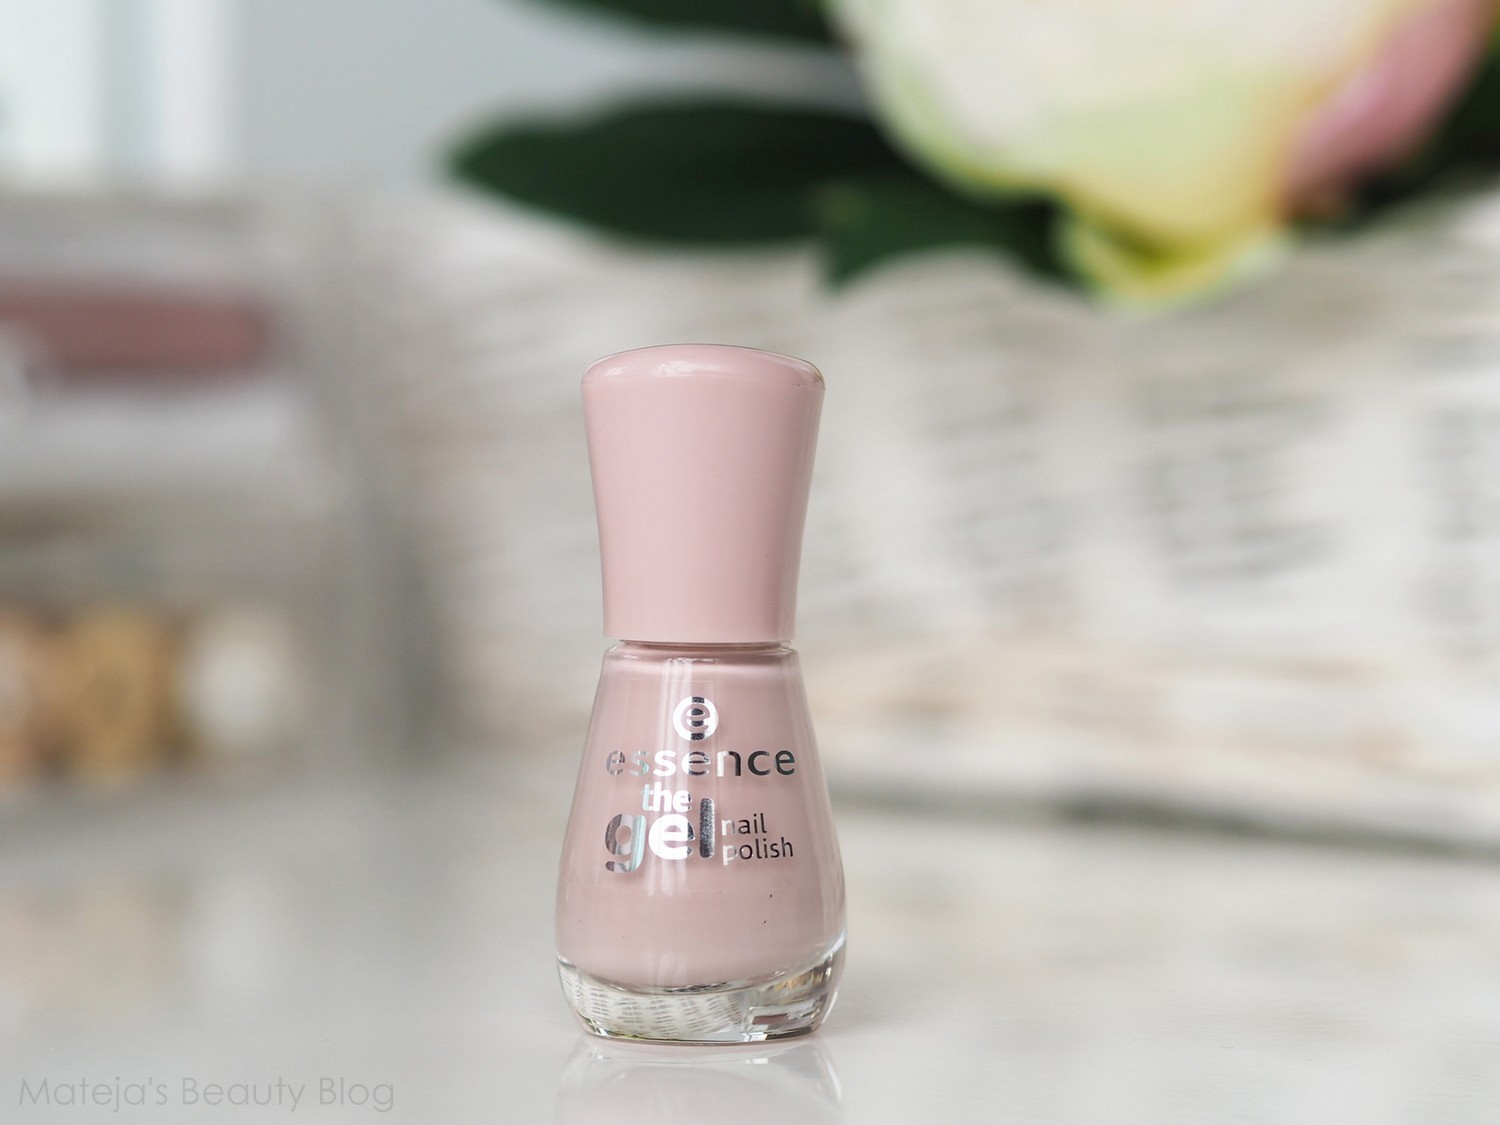 Essence the Gel Nail Polish 98 pure beauty - Mateja\'s Beauty Blog